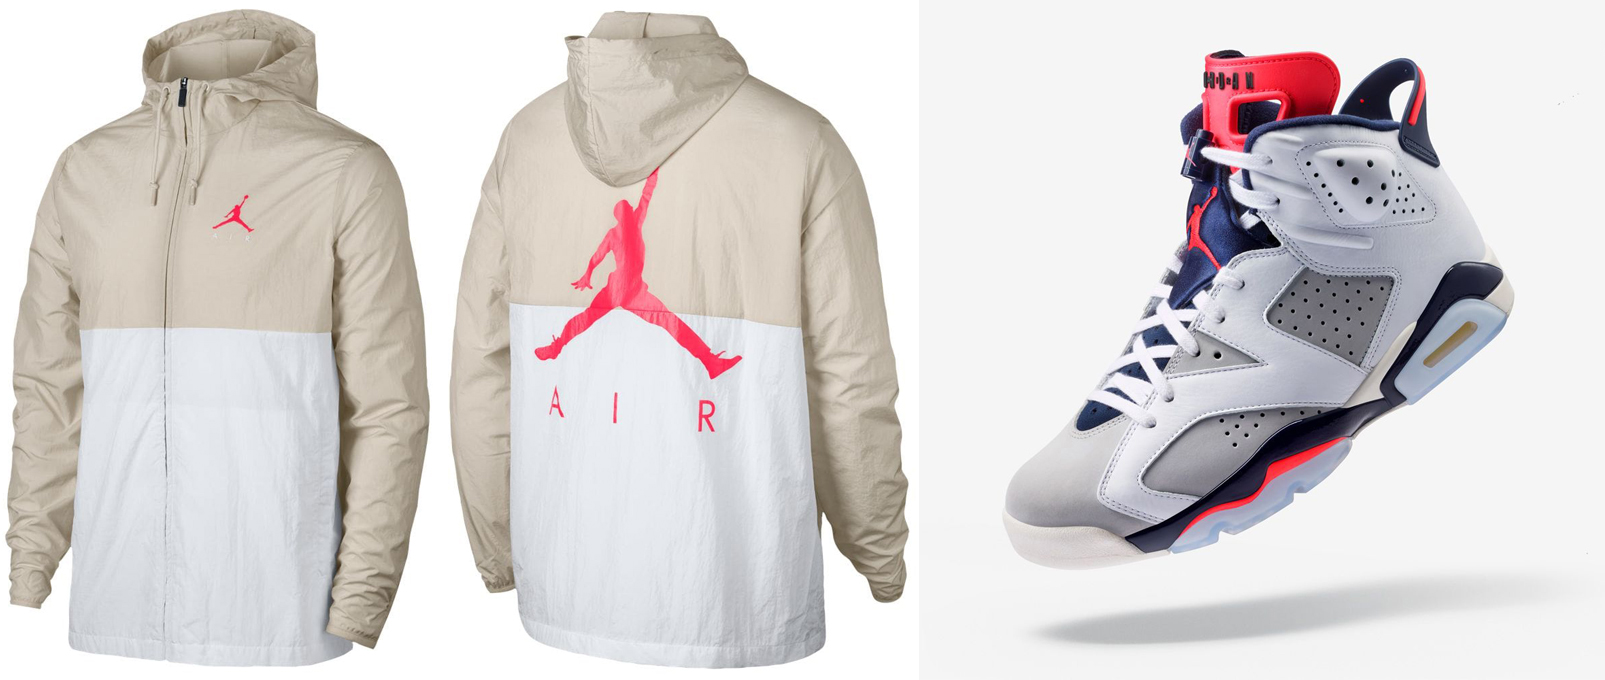 air-jordan-6-tinker-infrared-jacket-match